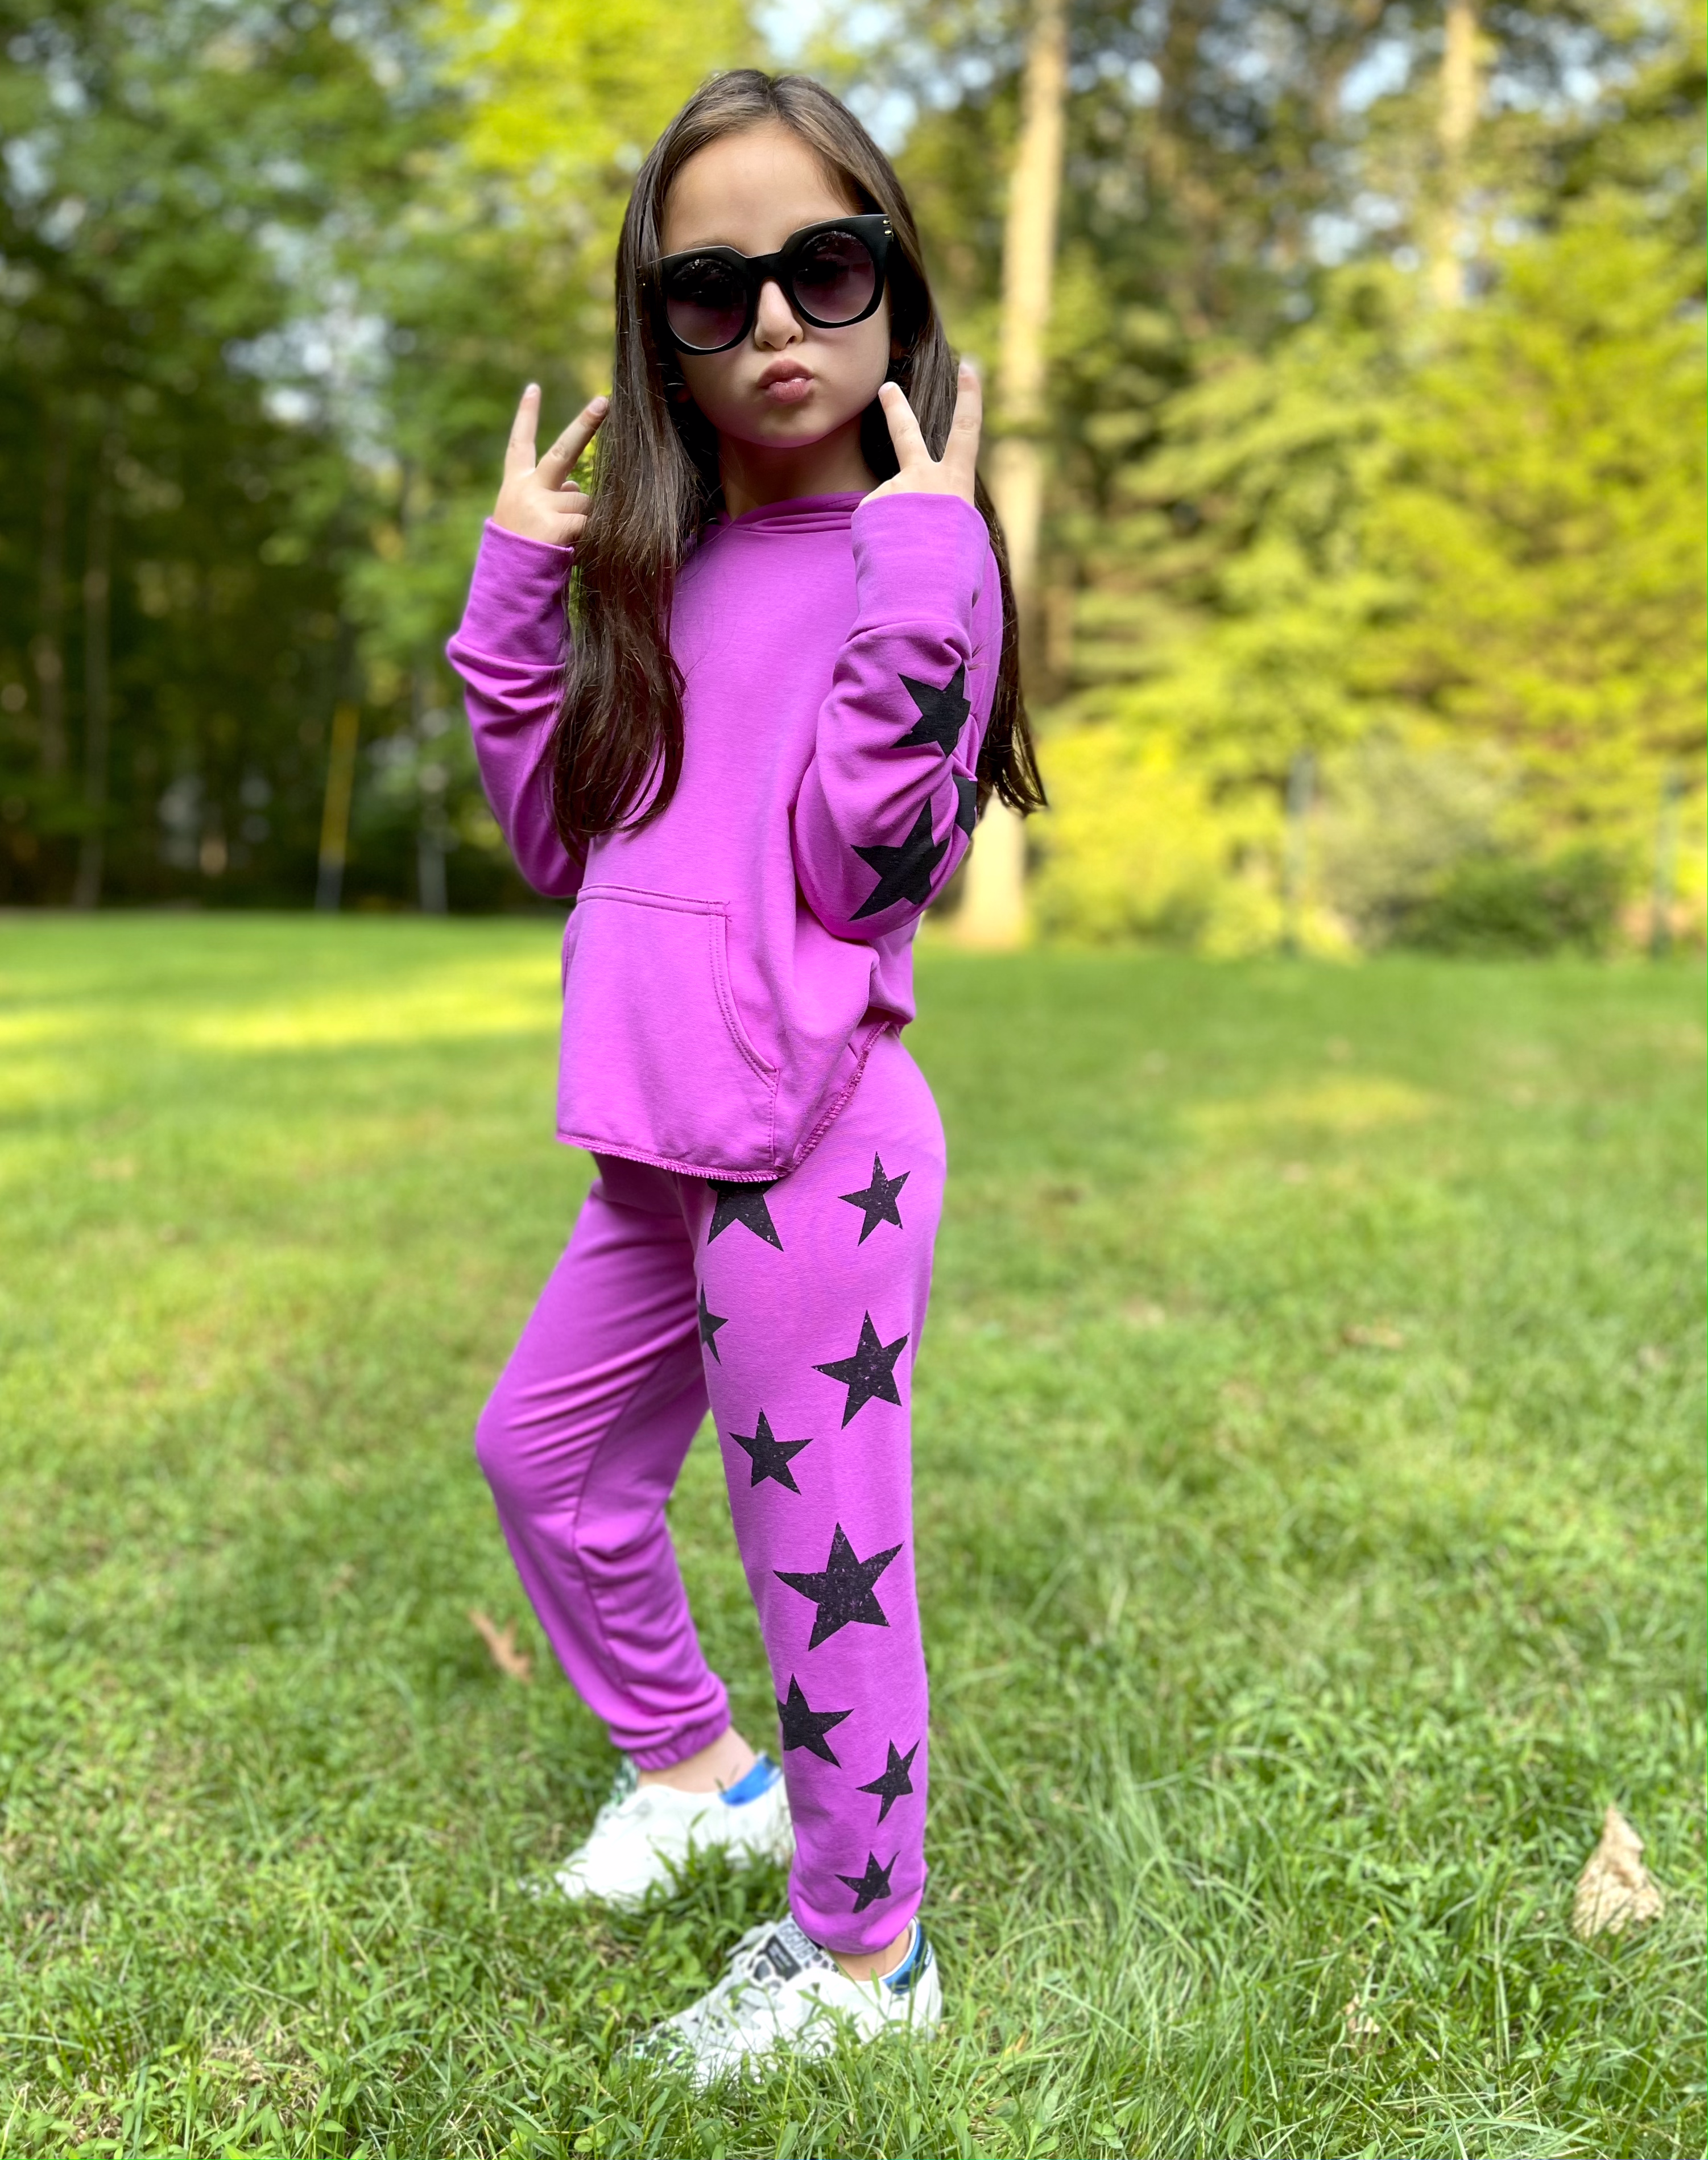 Young girl wearing purple star patterned shirt and pants.